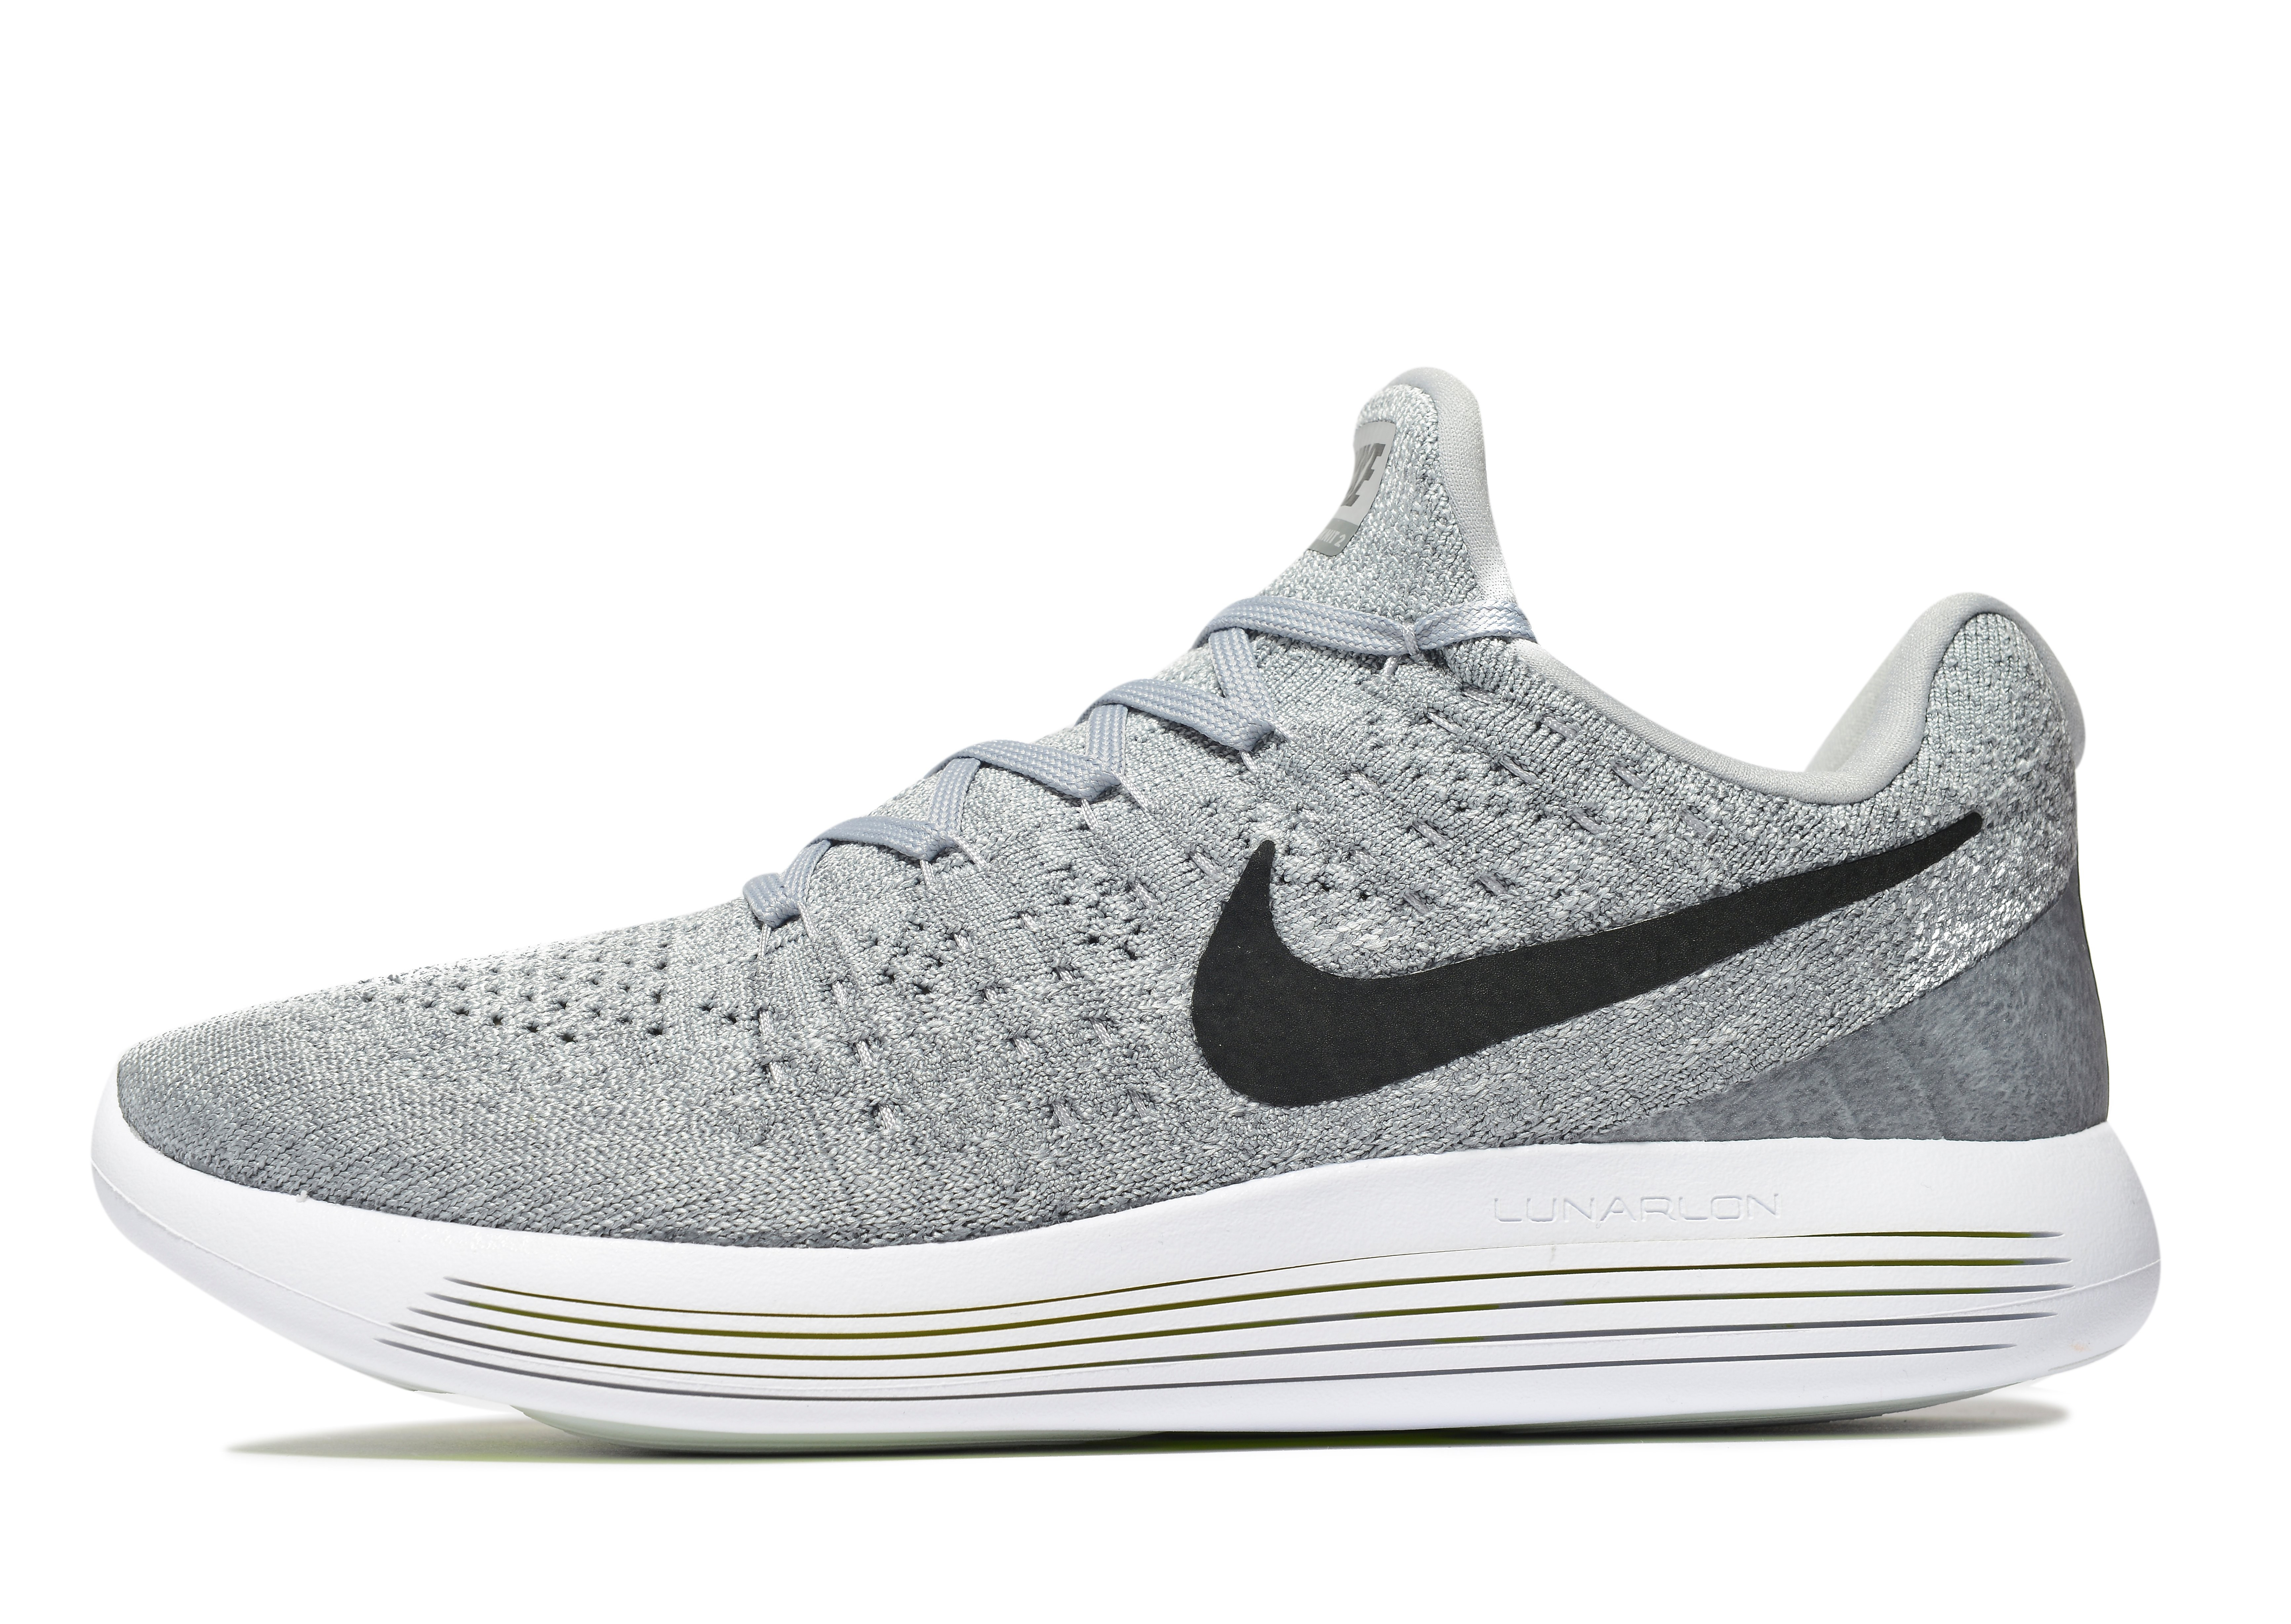 Nike LunarEpic Low Flyknit 2 Women's